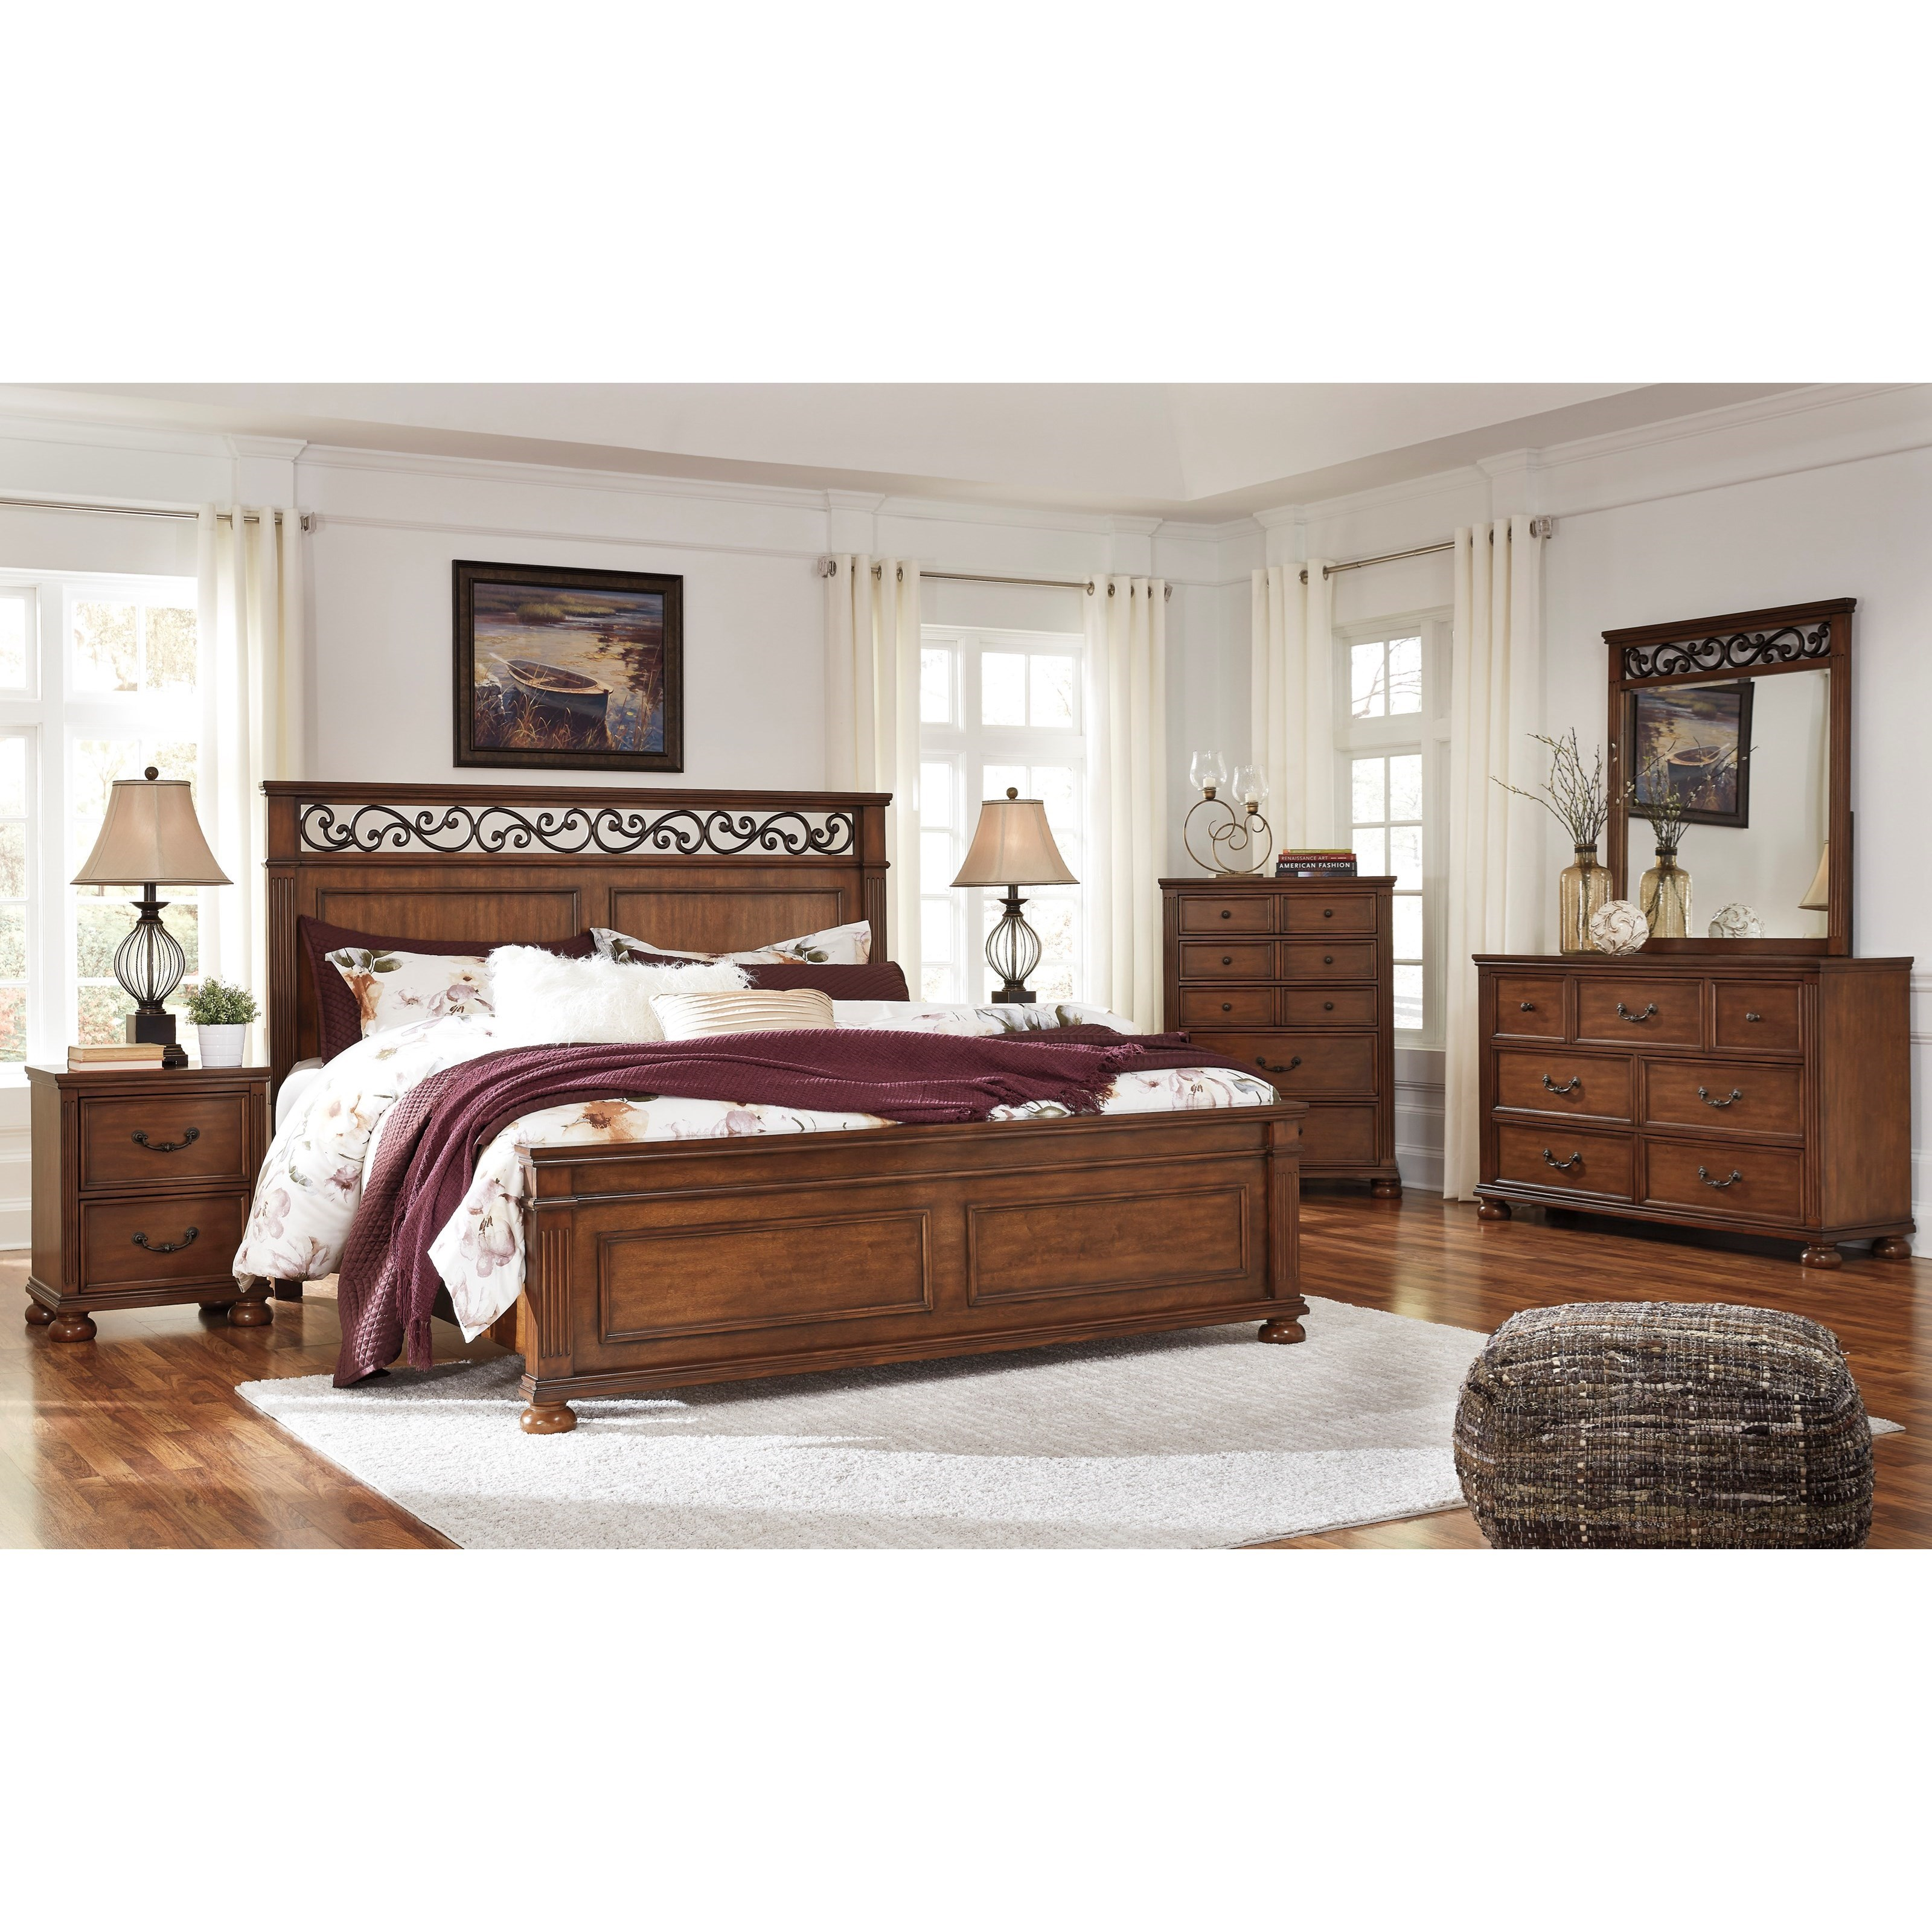 Signature design by ashley lazzene queen bedroom group for Bedroom groups